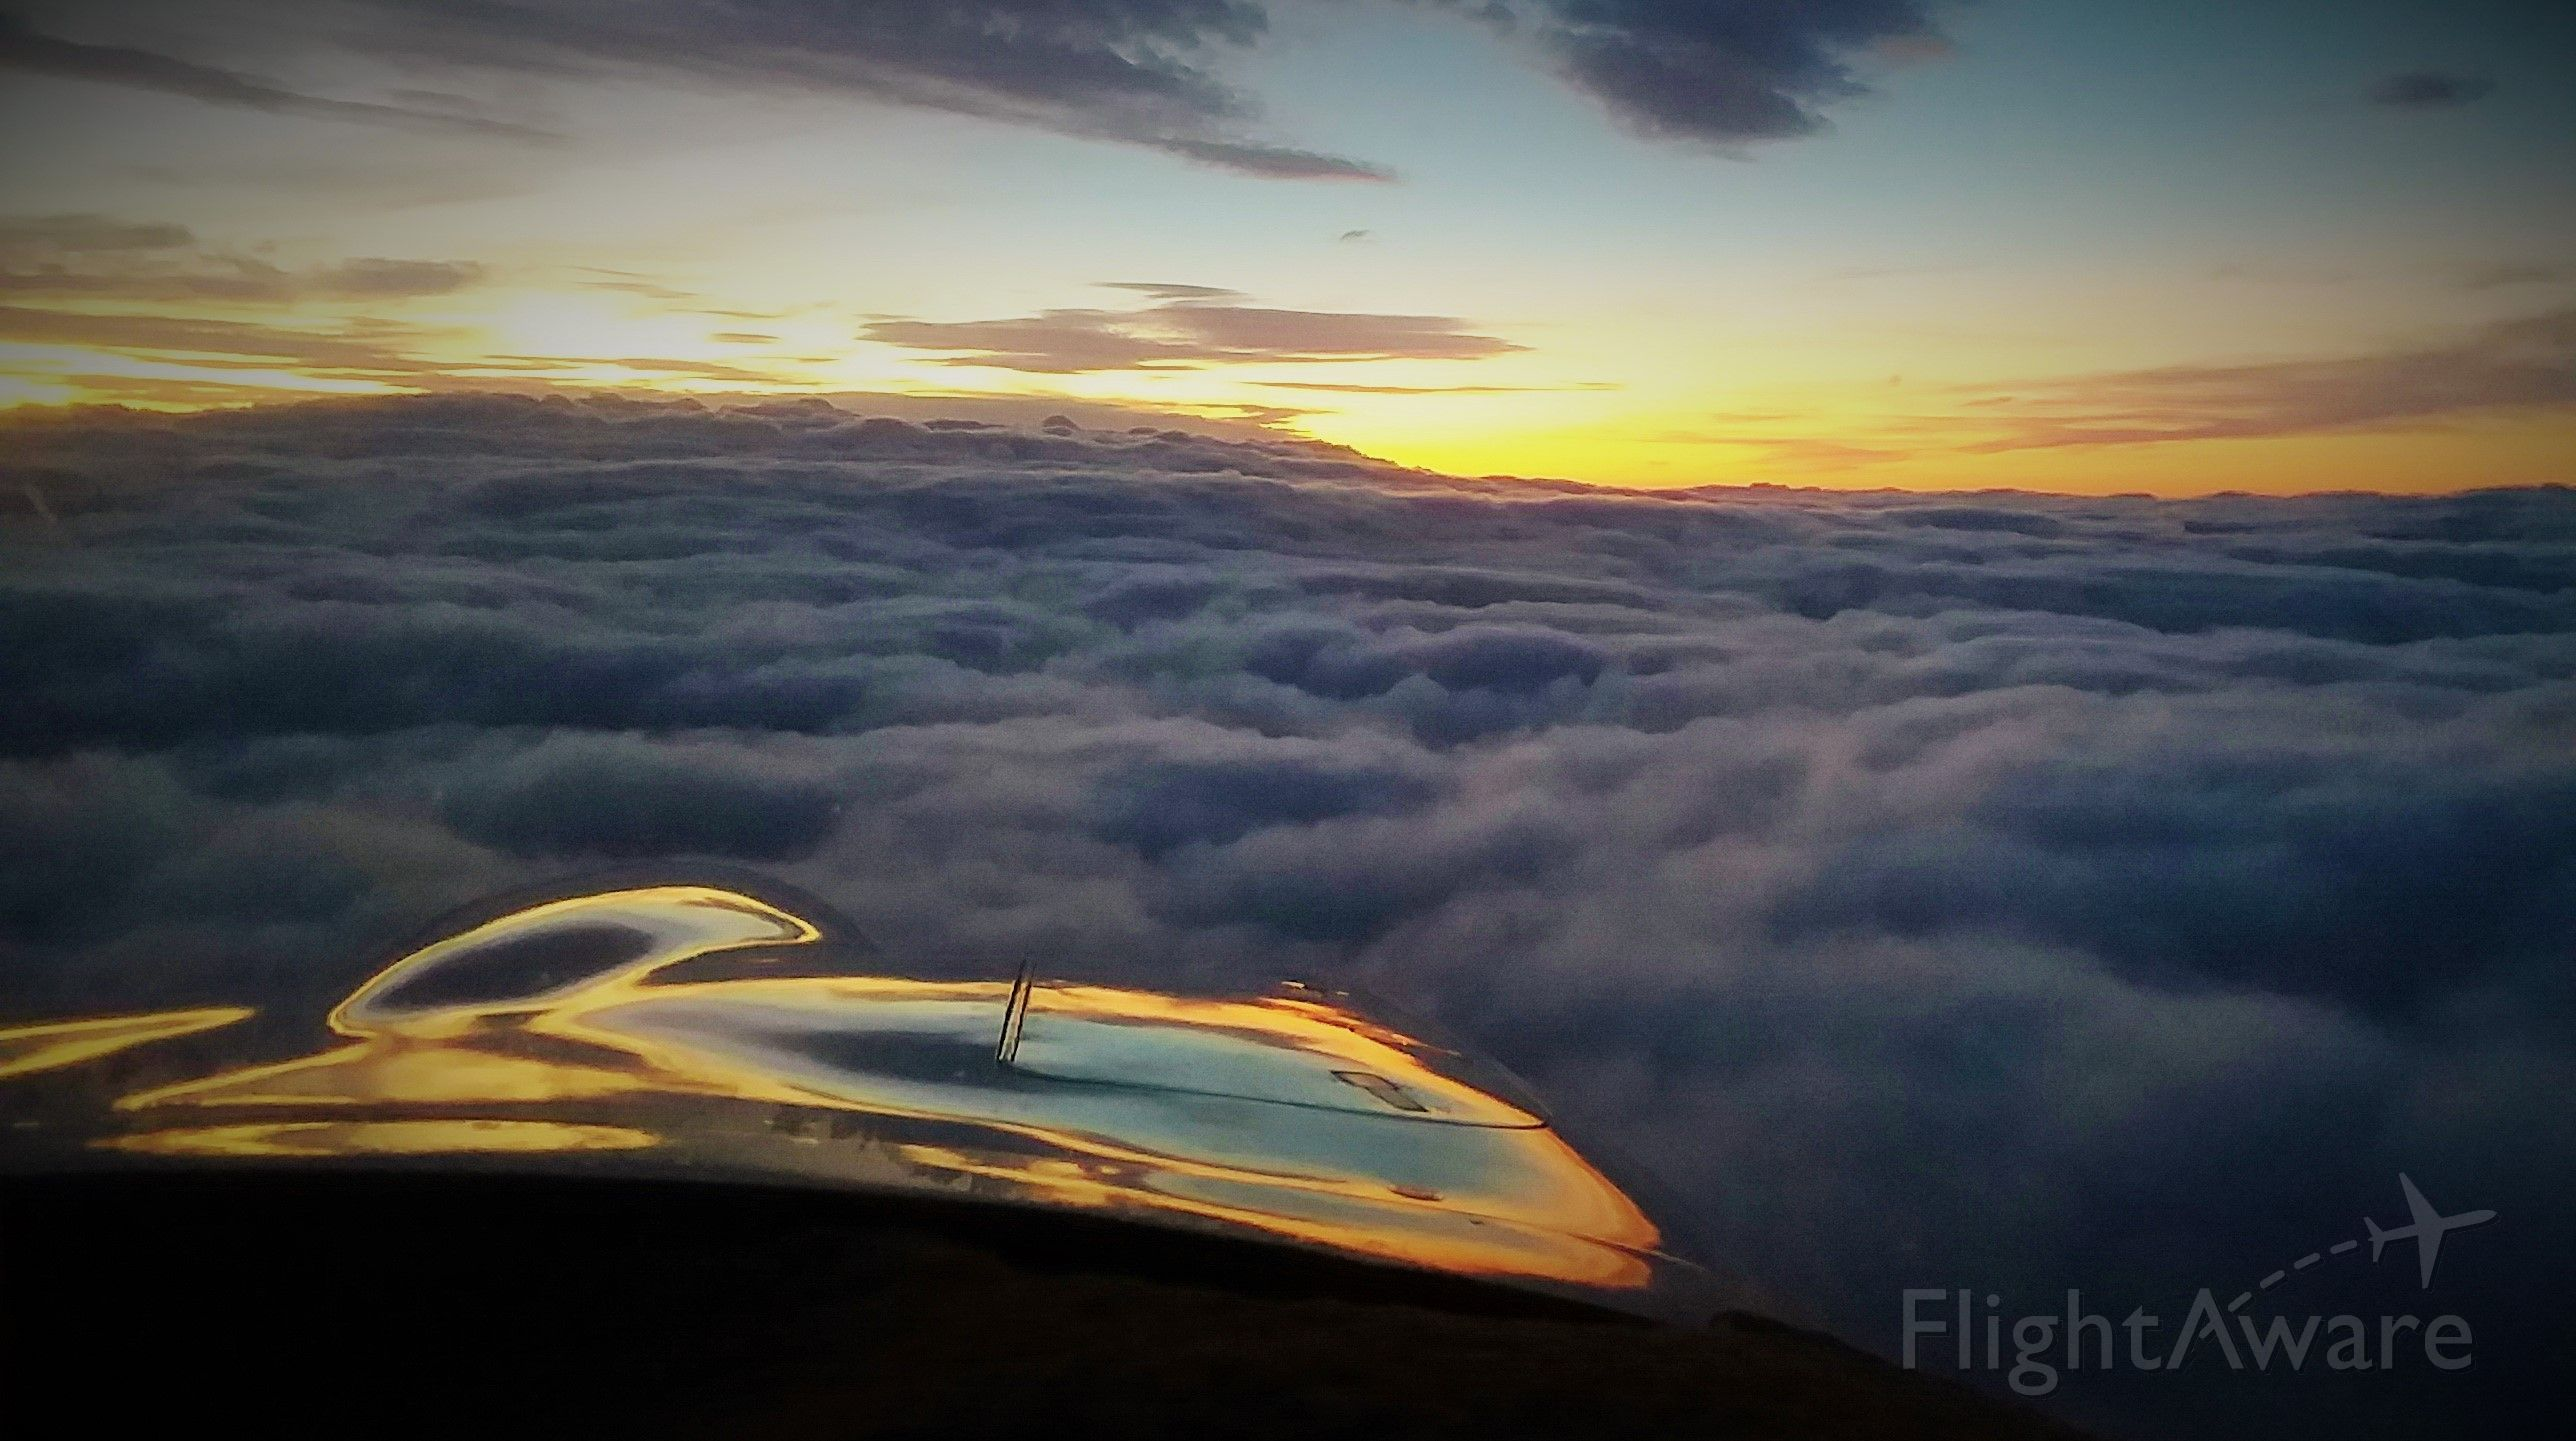 Mooney M-20 (N201CN) - Mooney Heaven - Chasing angels over Arkansas at twilight after a 900 mile IFR day